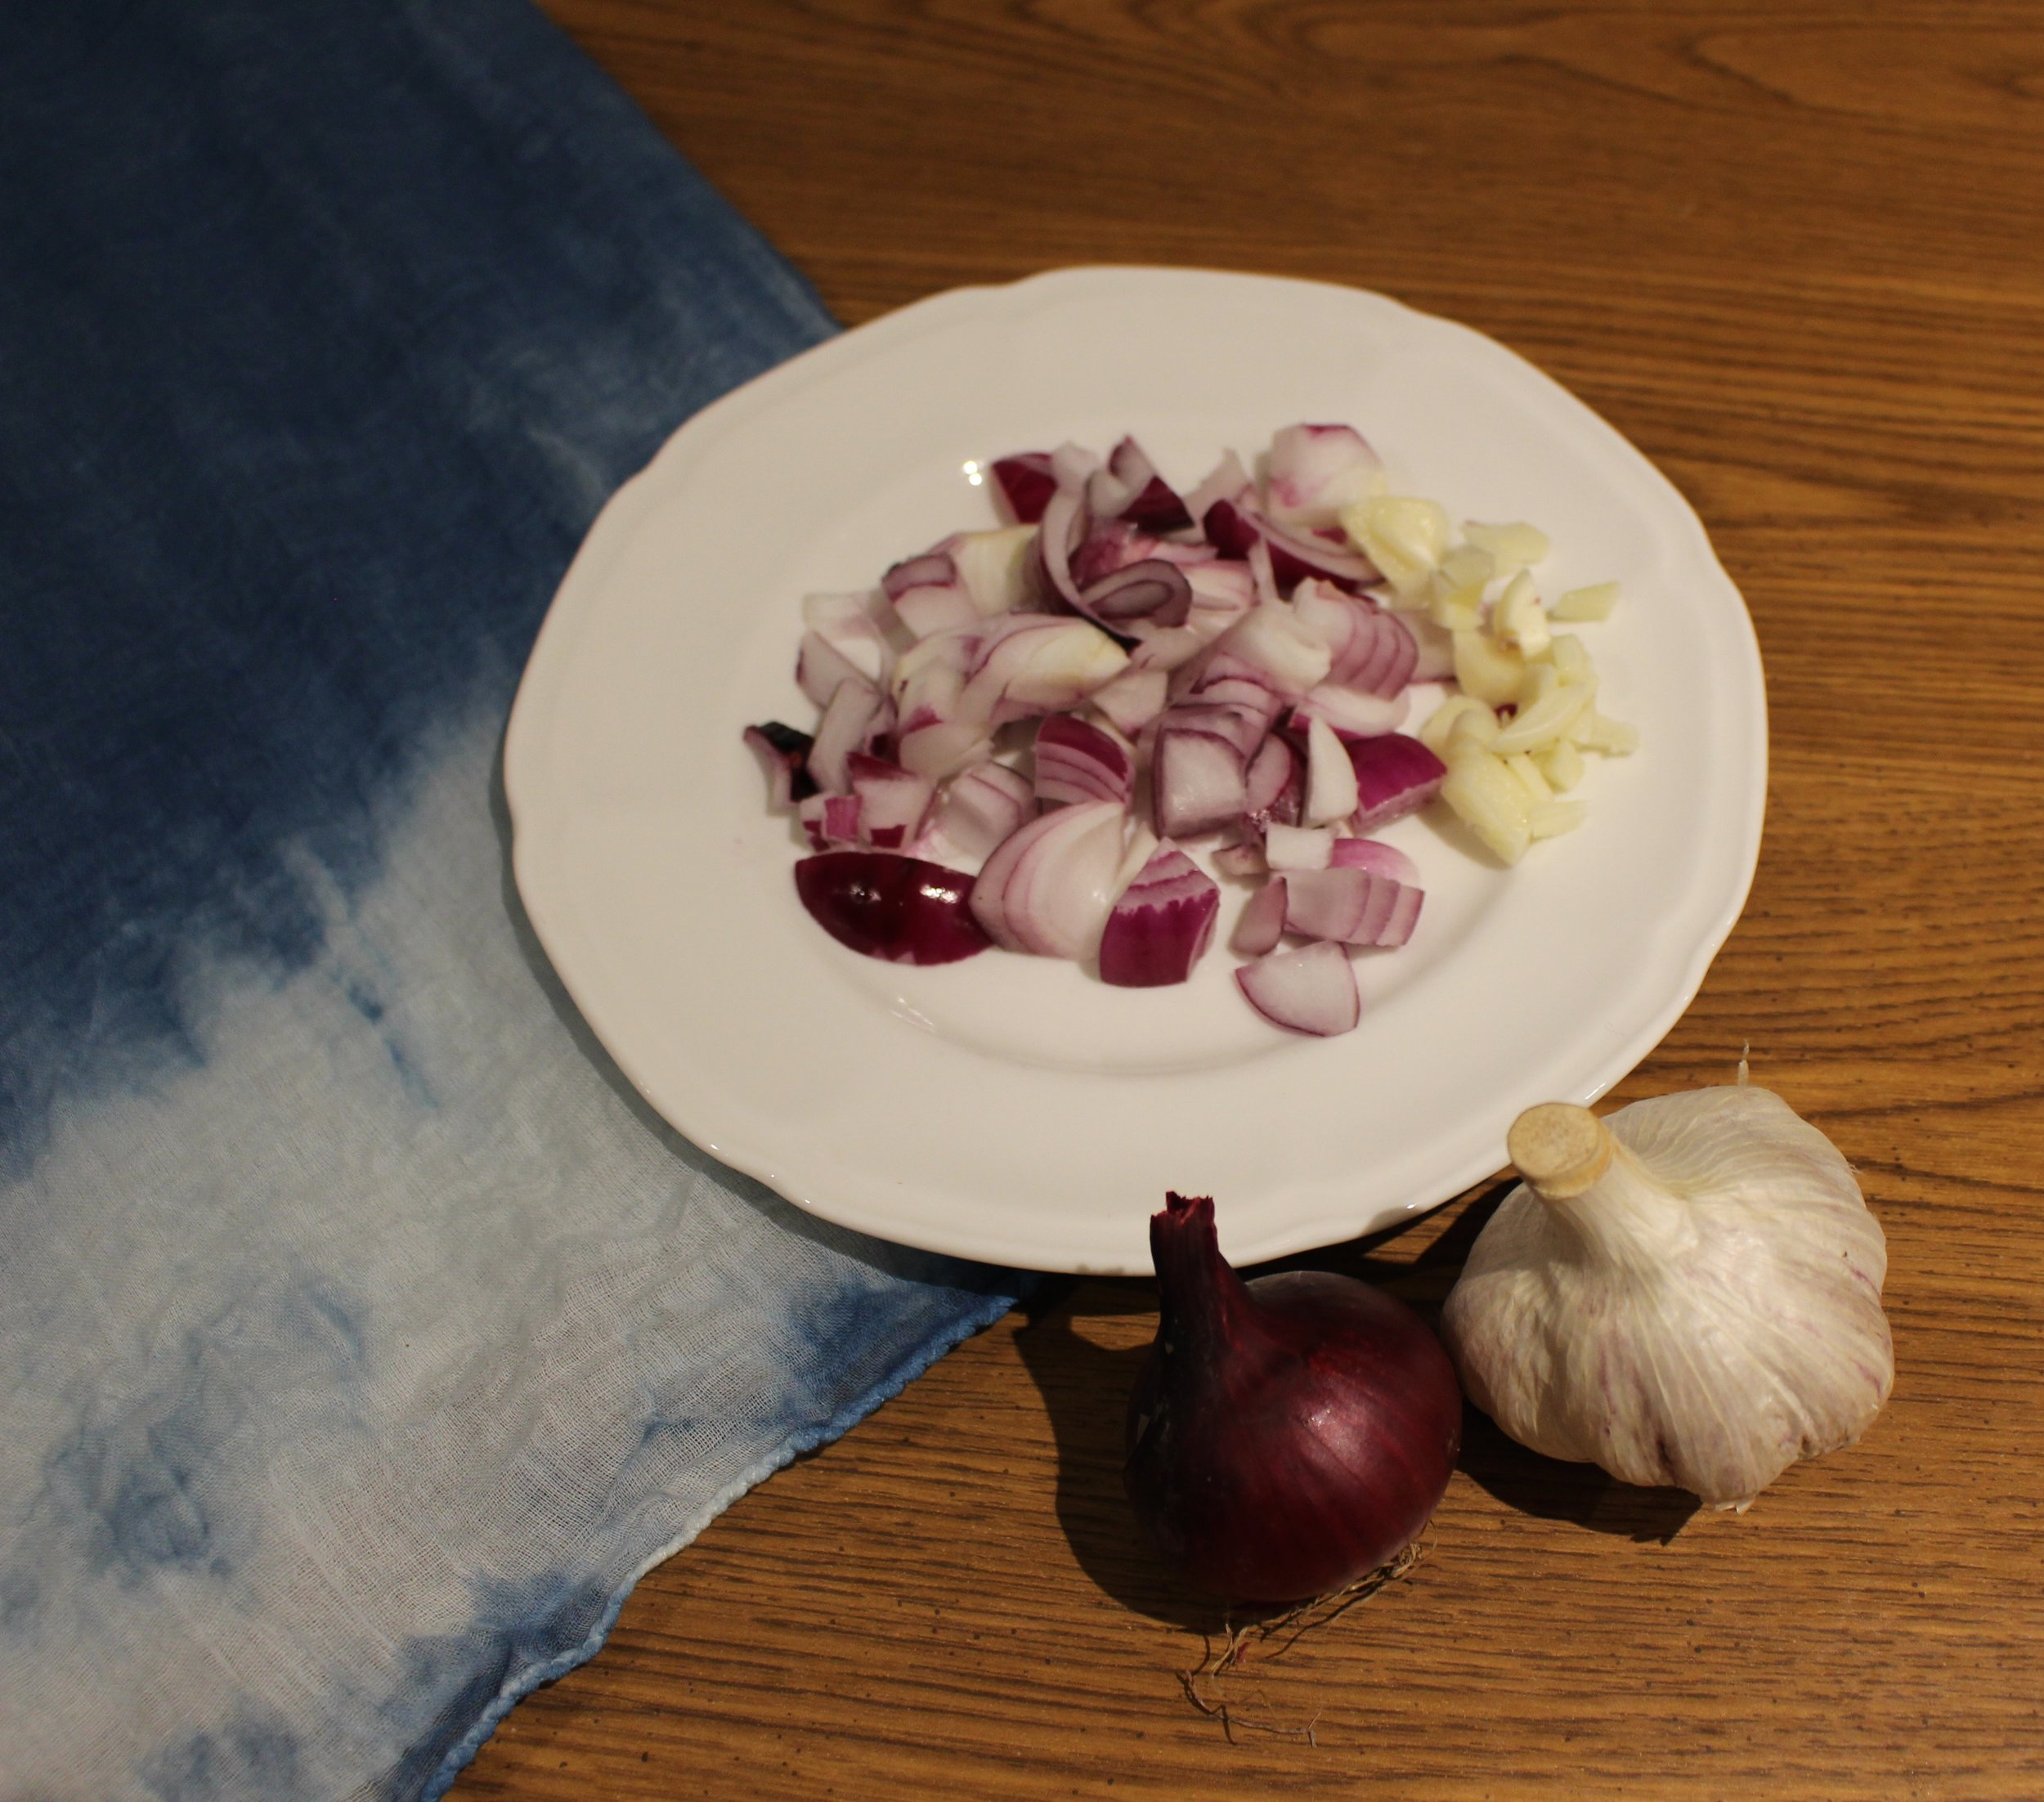 Onions and garlic from my dad's garden